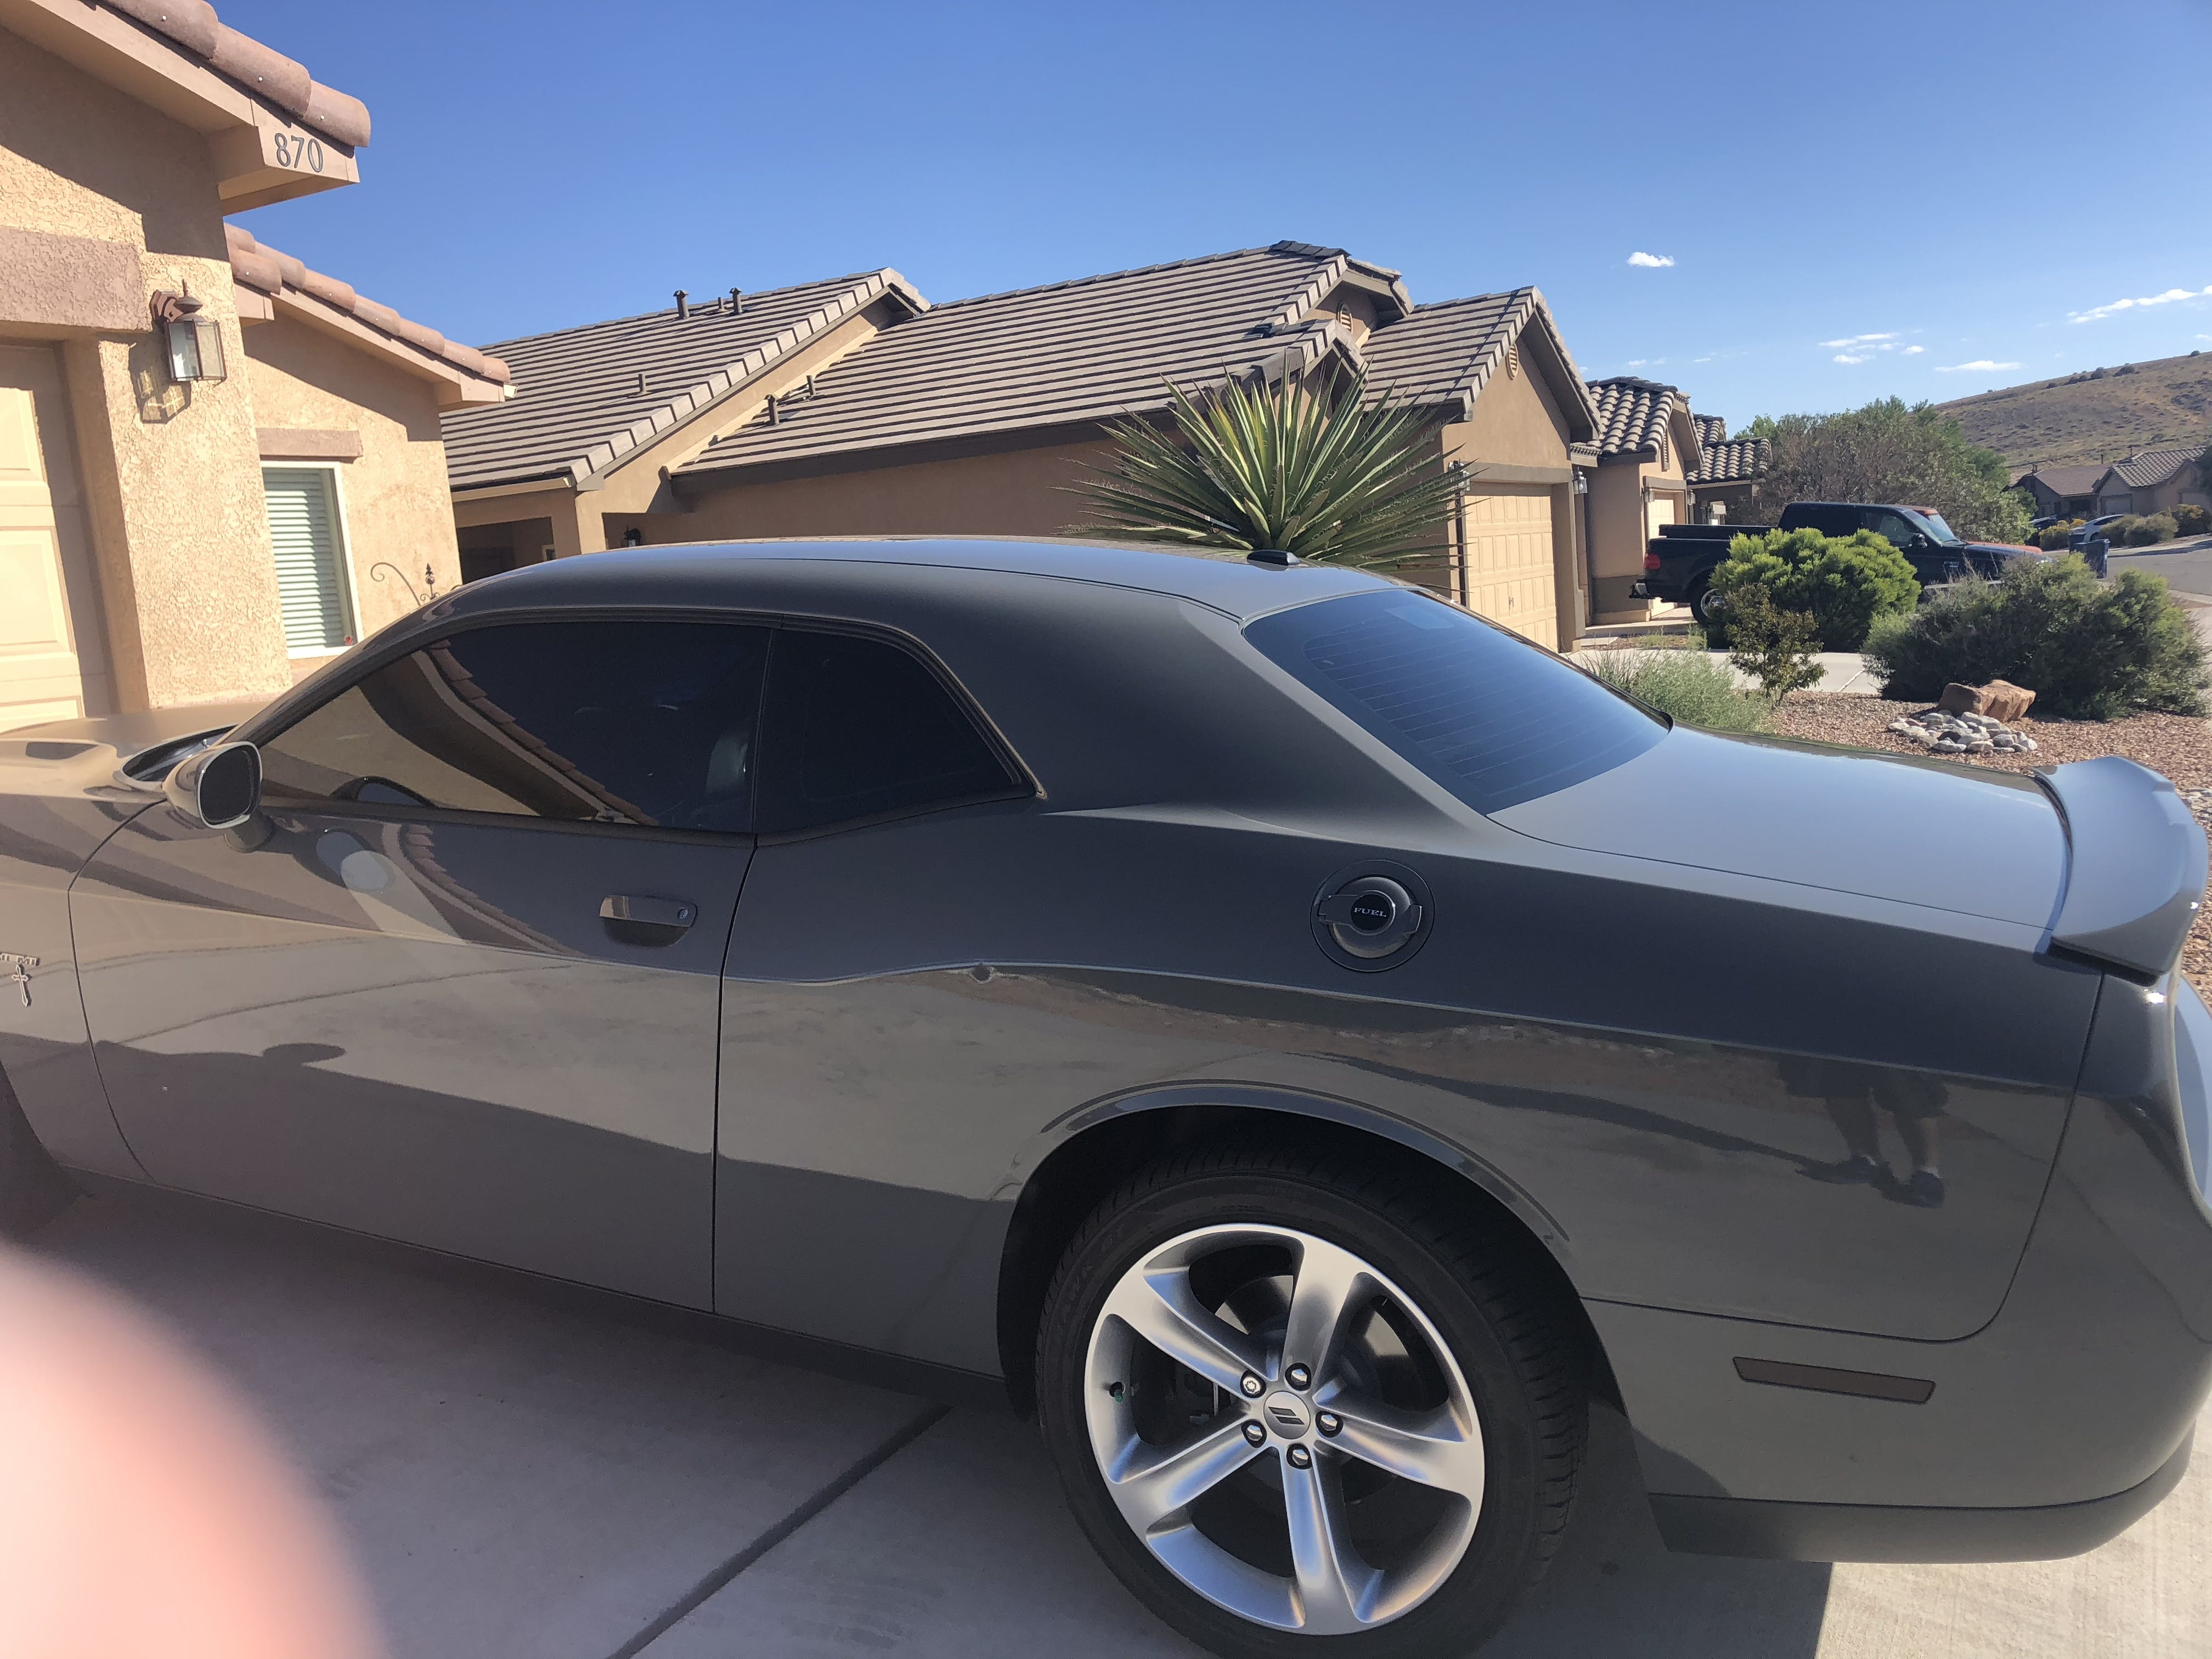 2015 dodge challenger rear reflector tint kit. Black Bedroom Furniture Sets. Home Design Ideas